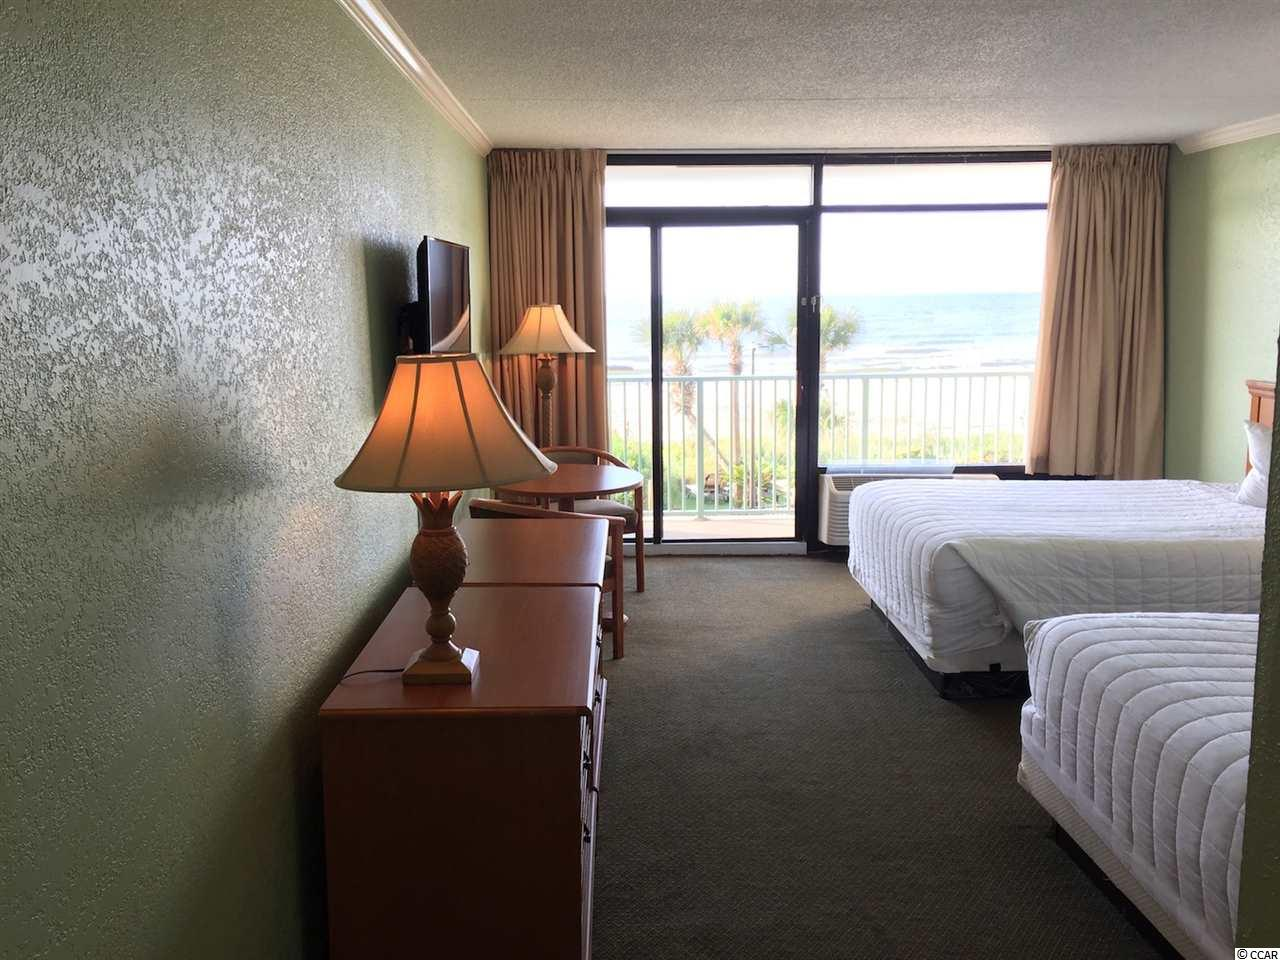 Contact your Realtor for this Efficiency bedroom condo for sale at  Sand Dunes Ocean Front Tower